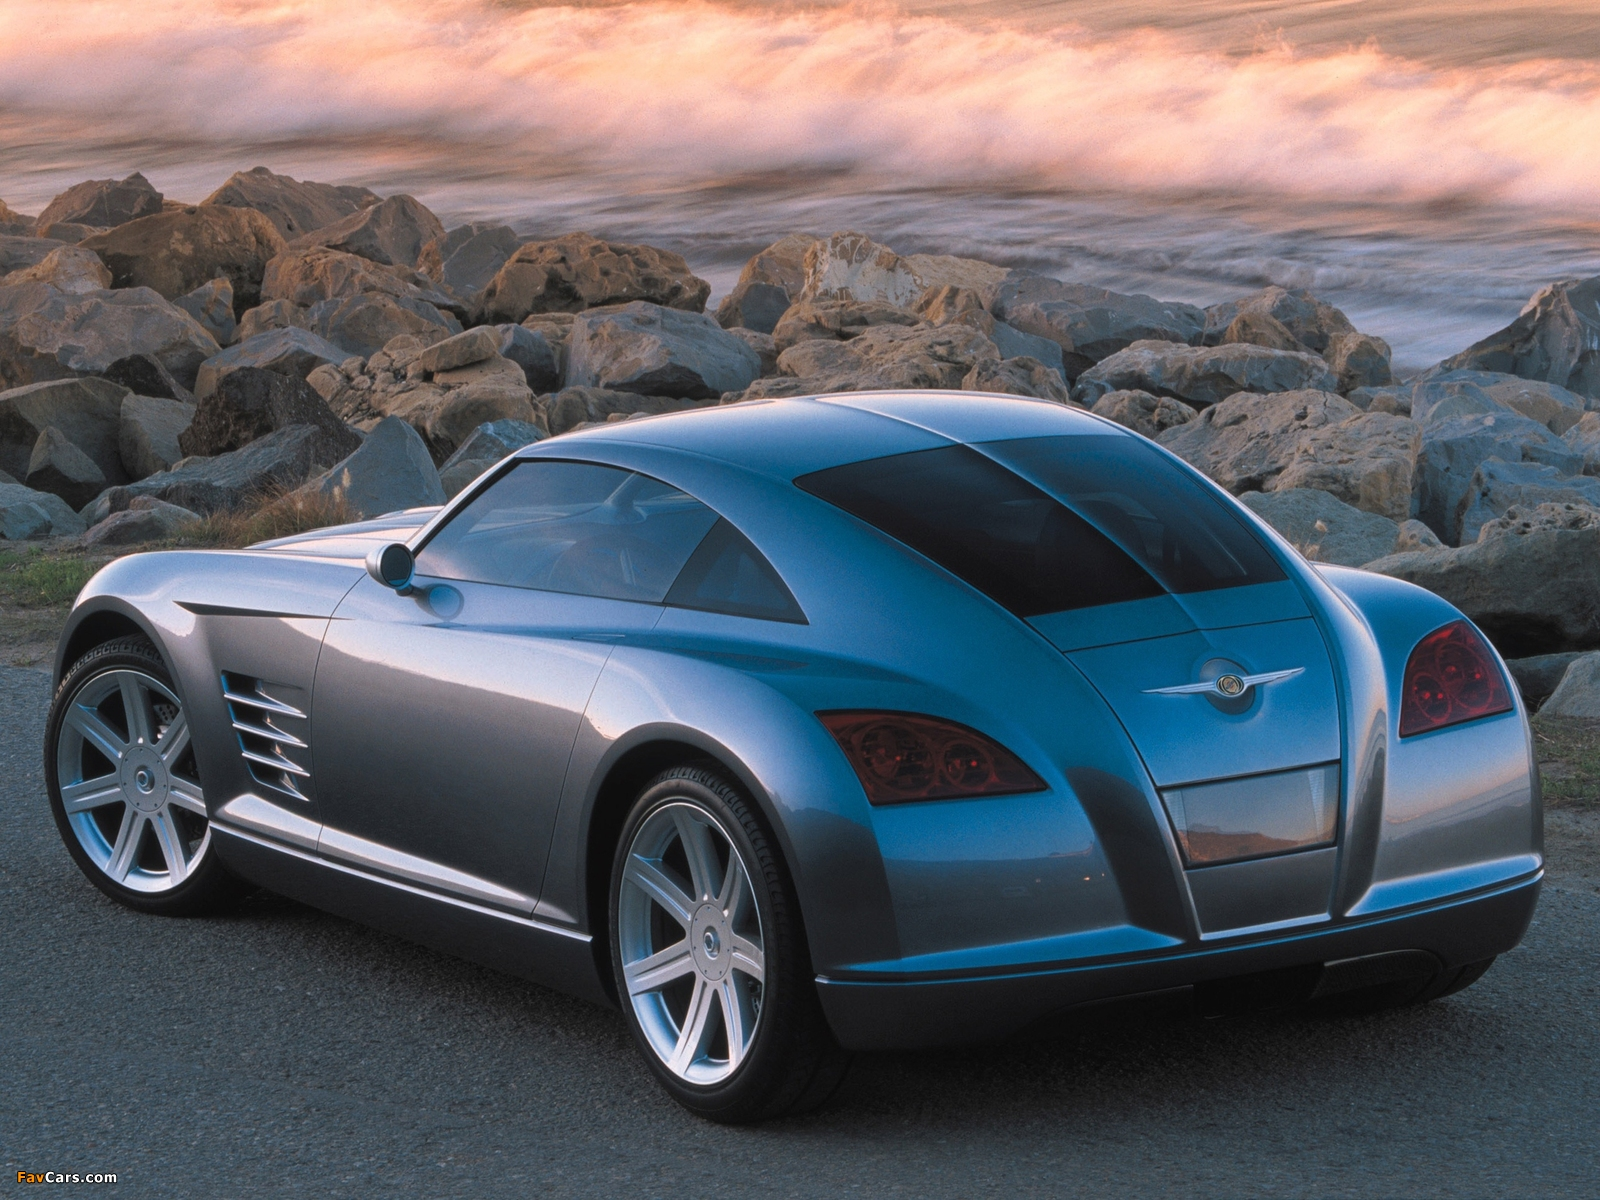 Chrysler Crossfire Concept 2001 pictures (1600 x 1200)